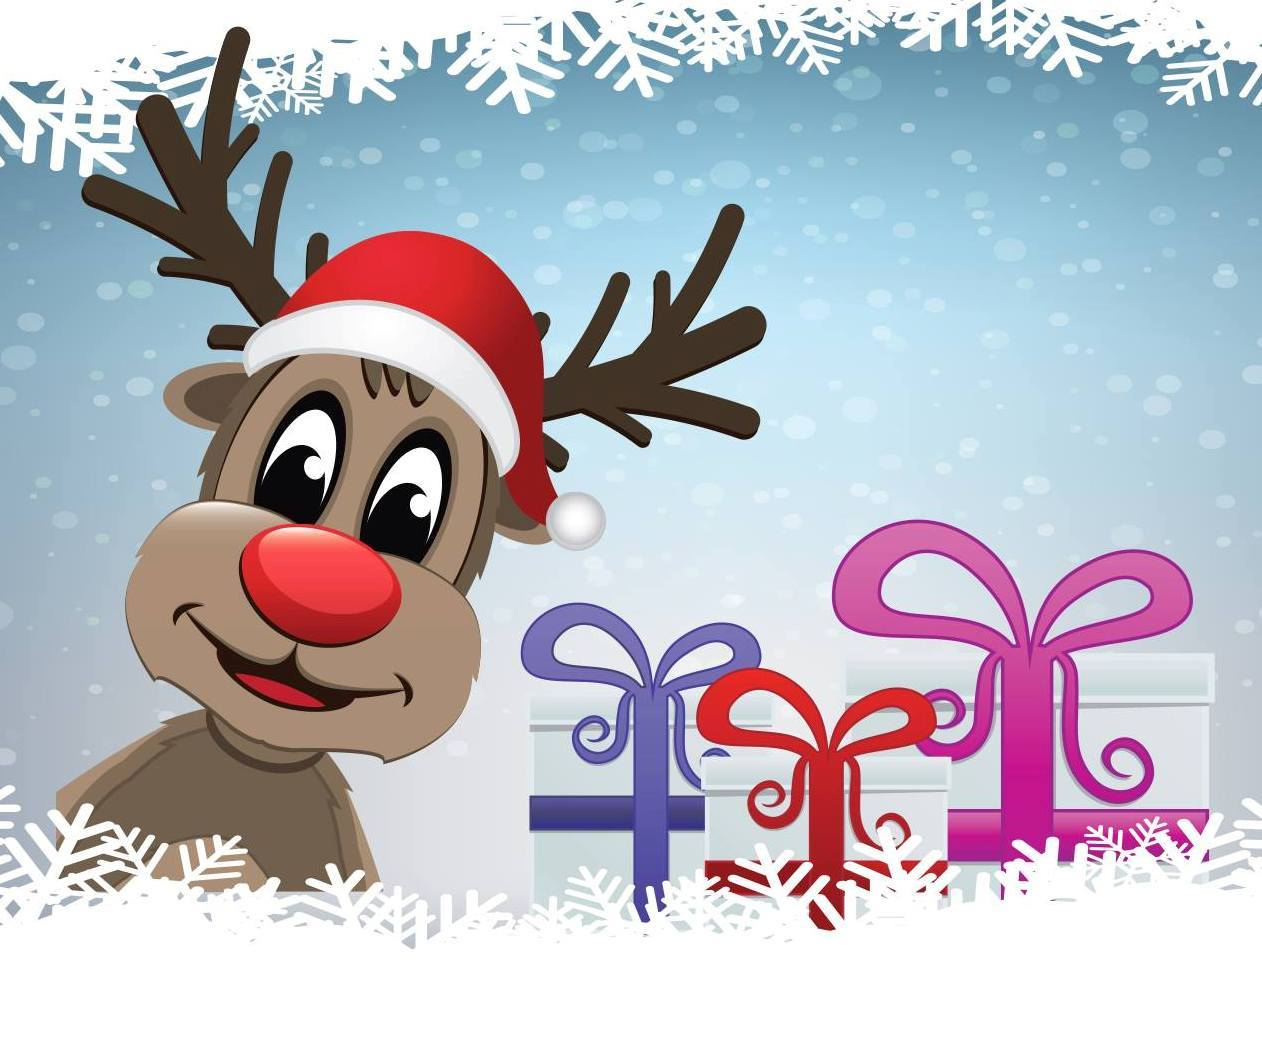 Holiday open house clipart 7 » Clipart Portal.